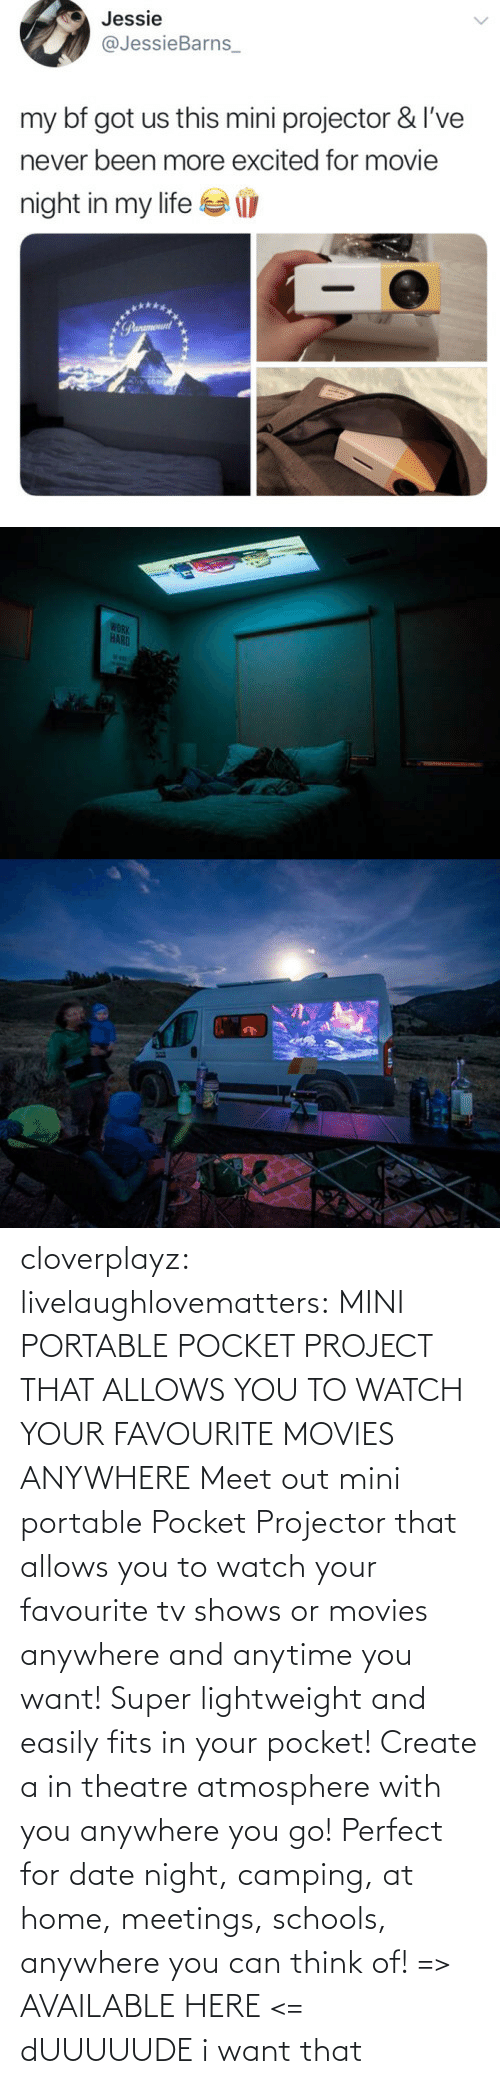 create a: cloverplayz: livelaughlovematters:  MINI PORTABLE POCKET PROJECT THAT ALLOWS YOU TO WATCH YOUR FAVOURITE MOVIES ANYWHERE Meet out mini portable Pocket Projector that allows you to watch your favourite tv shows or movies anywhere and anytime you want! Super lightweight and easily fits in your pocket! Create a in theatre atmosphere with you anywhere you go! Perfect for date night, camping, at home, meetings, schools, anywhere you can think of! => AVAILABLE HERE <=  dUUUUUDE i want that